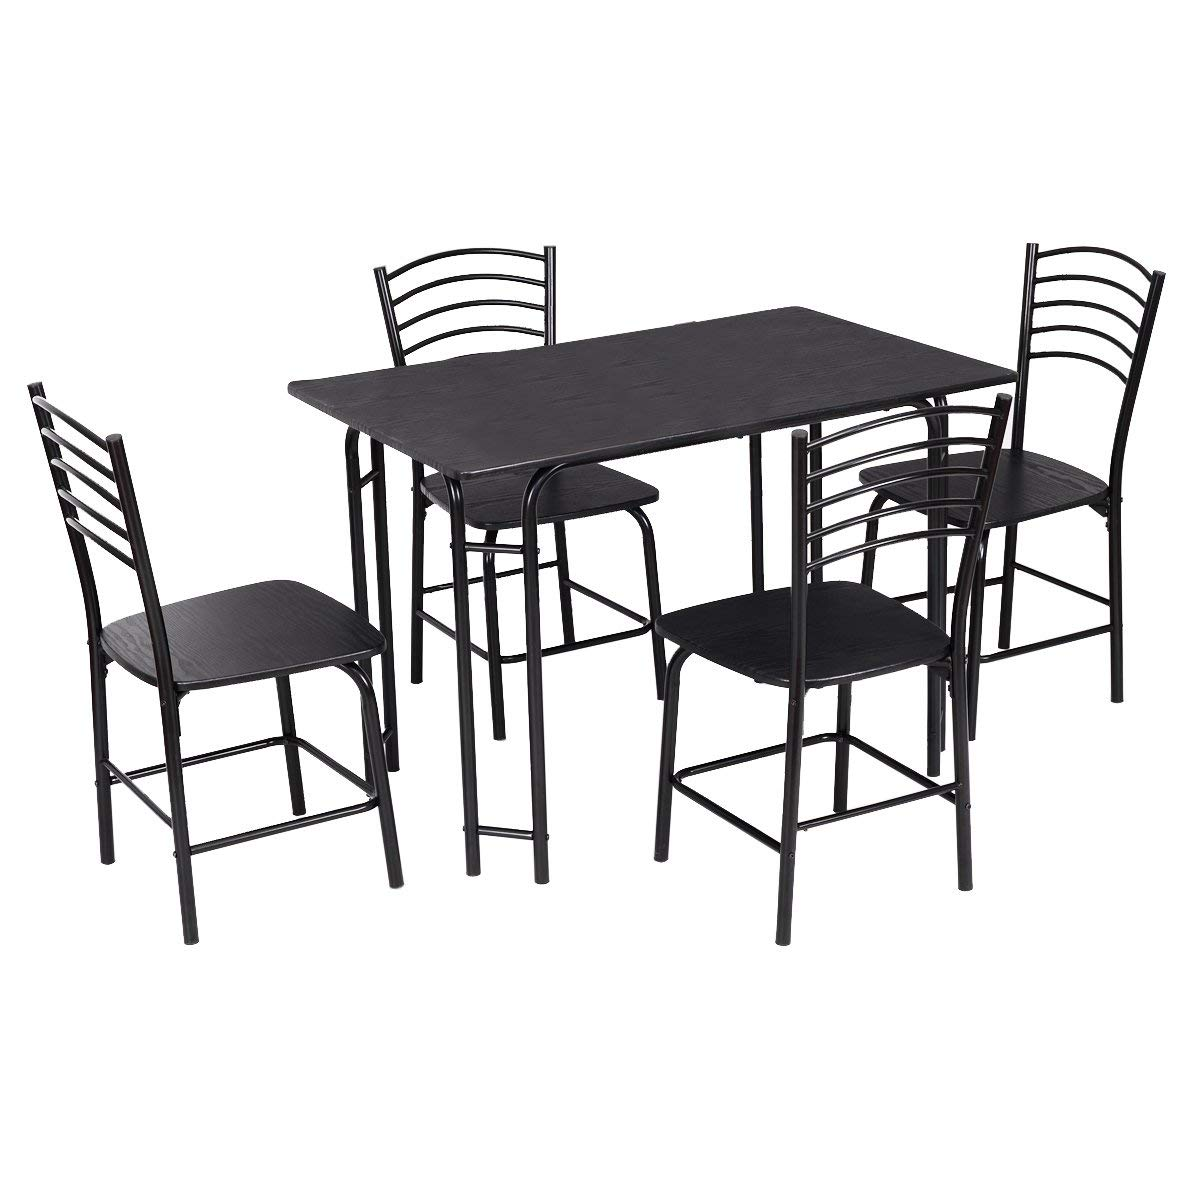 Giantex 5 PCS Dining Table Set 4 Person, Modern Kitchen Table and 4 Chairs, Wooden Top and Metal Legs, Home Dining Room Breakfast Furniture Rectangular Table, Black by Giantex